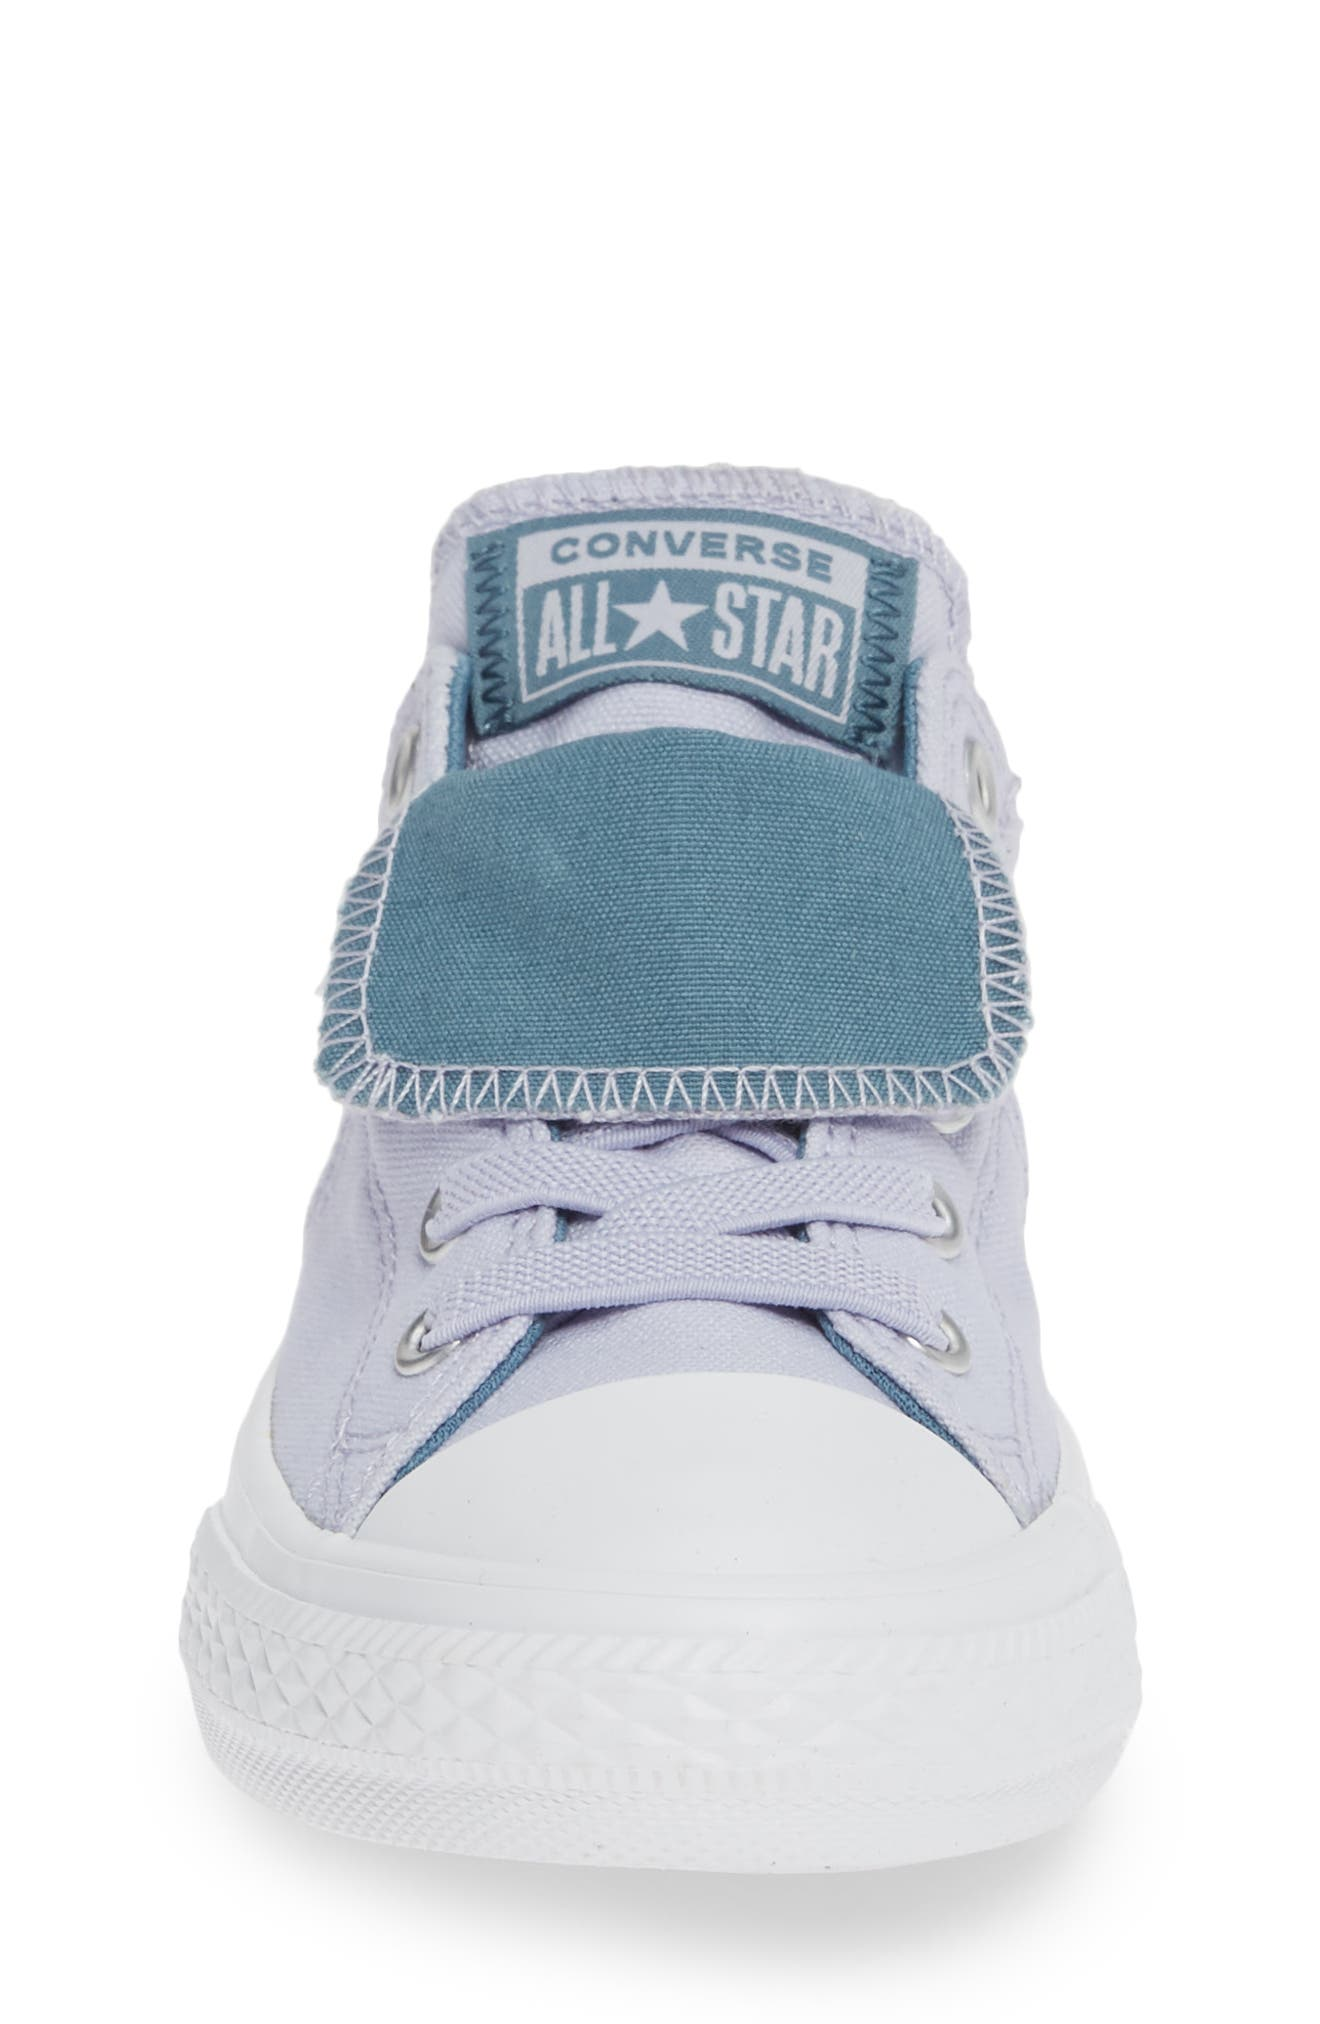 ,                             Chuck Taylor<sup>®</sup> All Star<sup>®</sup> Maddie Double Tongue Sneaker,                             Alternate thumbnail 76, color,                             530